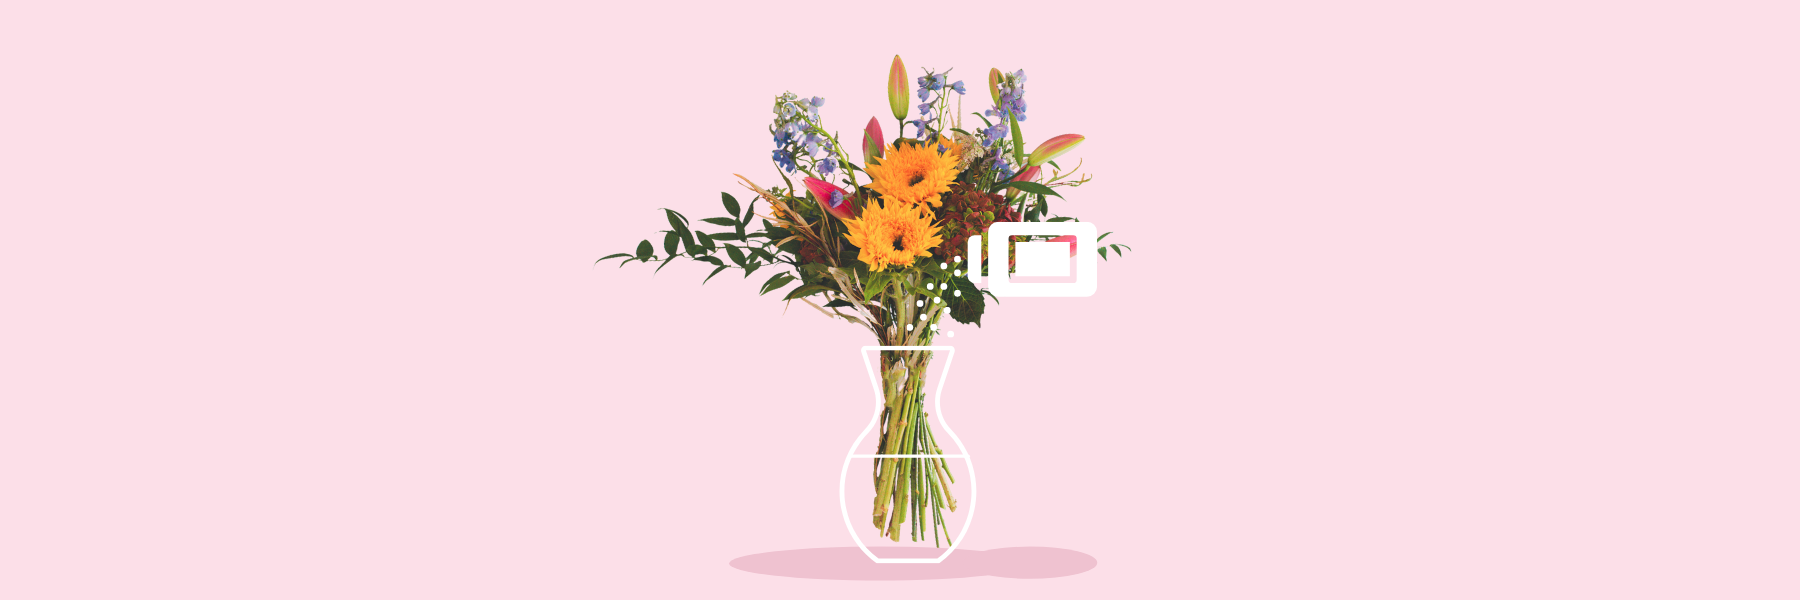 Food for flowers